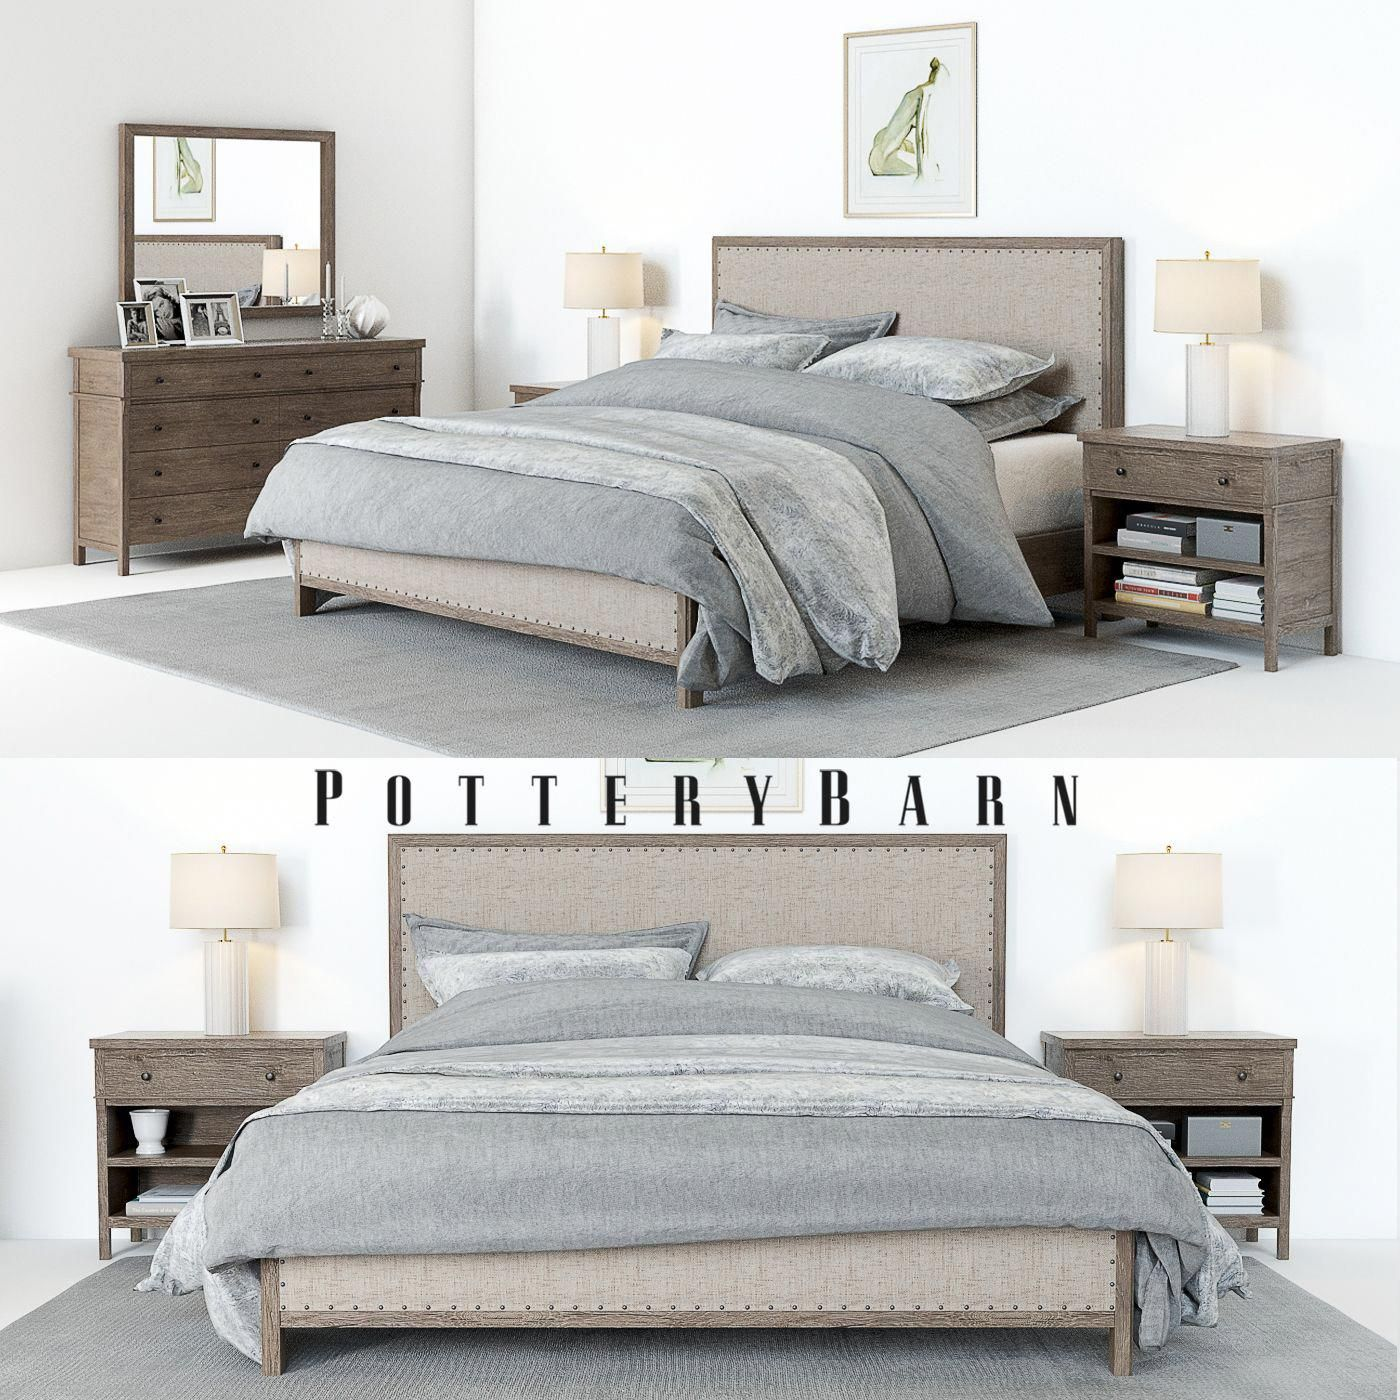 Trendy Hairstyles For Women Fascinatingbedroomideas Info 4892127869 Pinitlatero Master Bedroom Furniture Cheap Bedroom Furniture Pottery Barn Bedroom Master